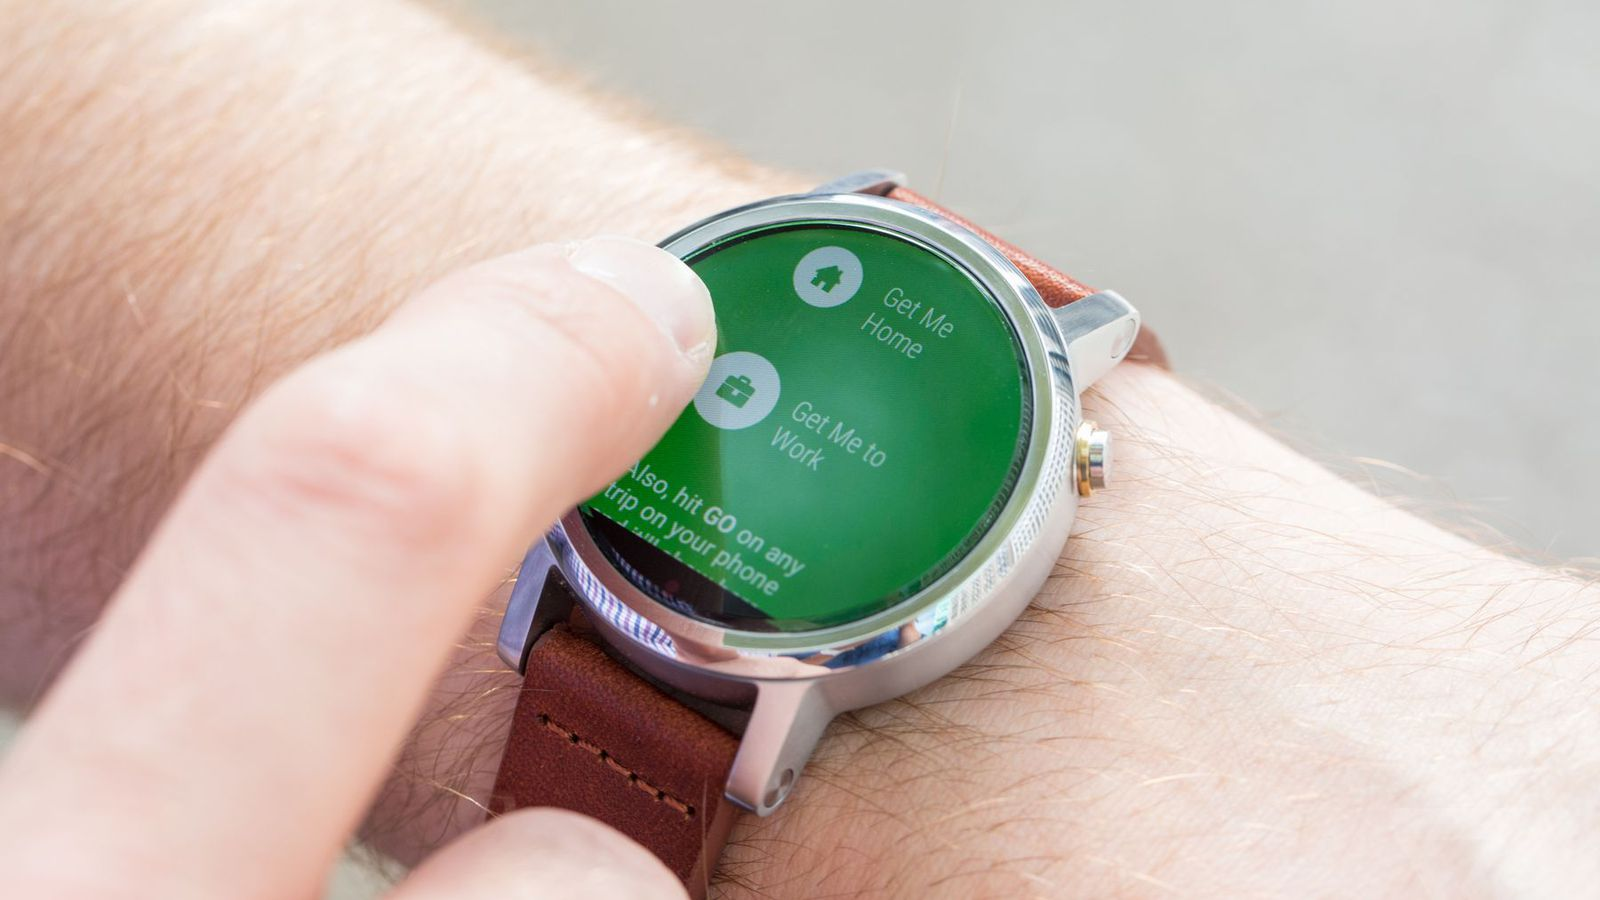 Android Wear 2.0 is launching next month